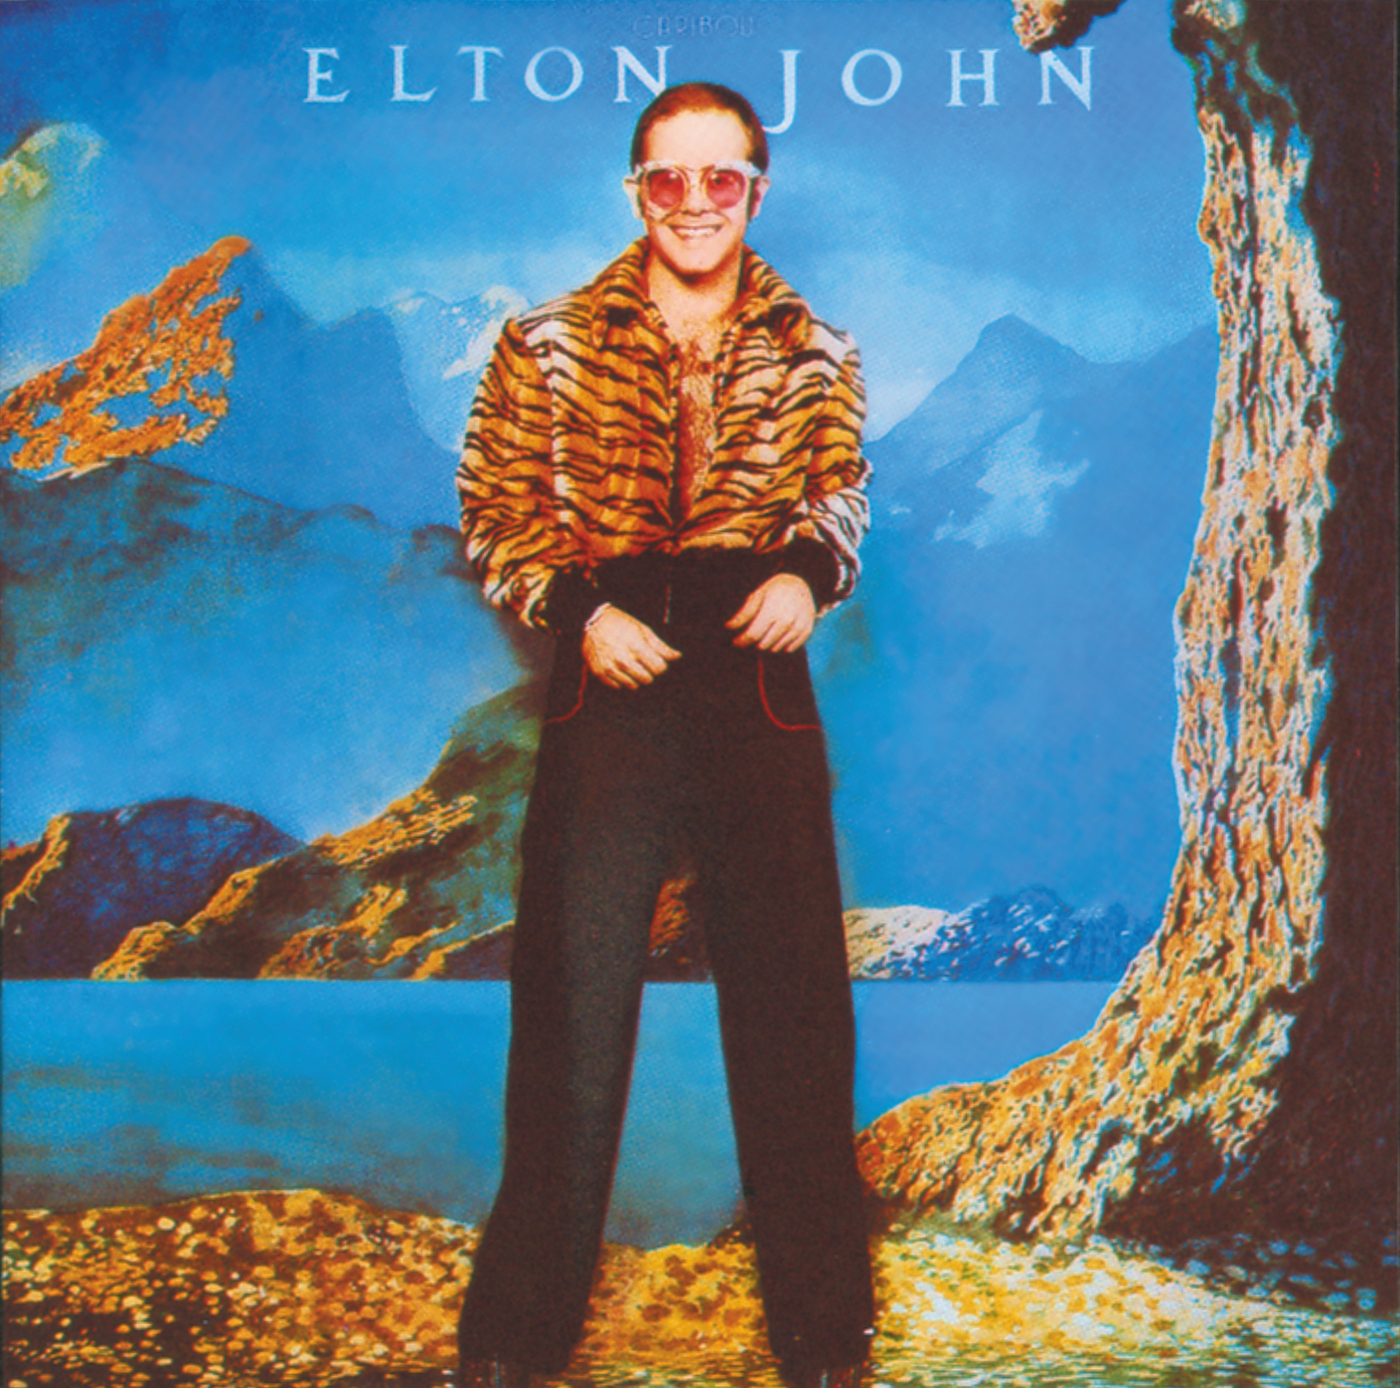 Elton John sunglasses and outfit from album Caribou were acquired at Granny Takes A Trip